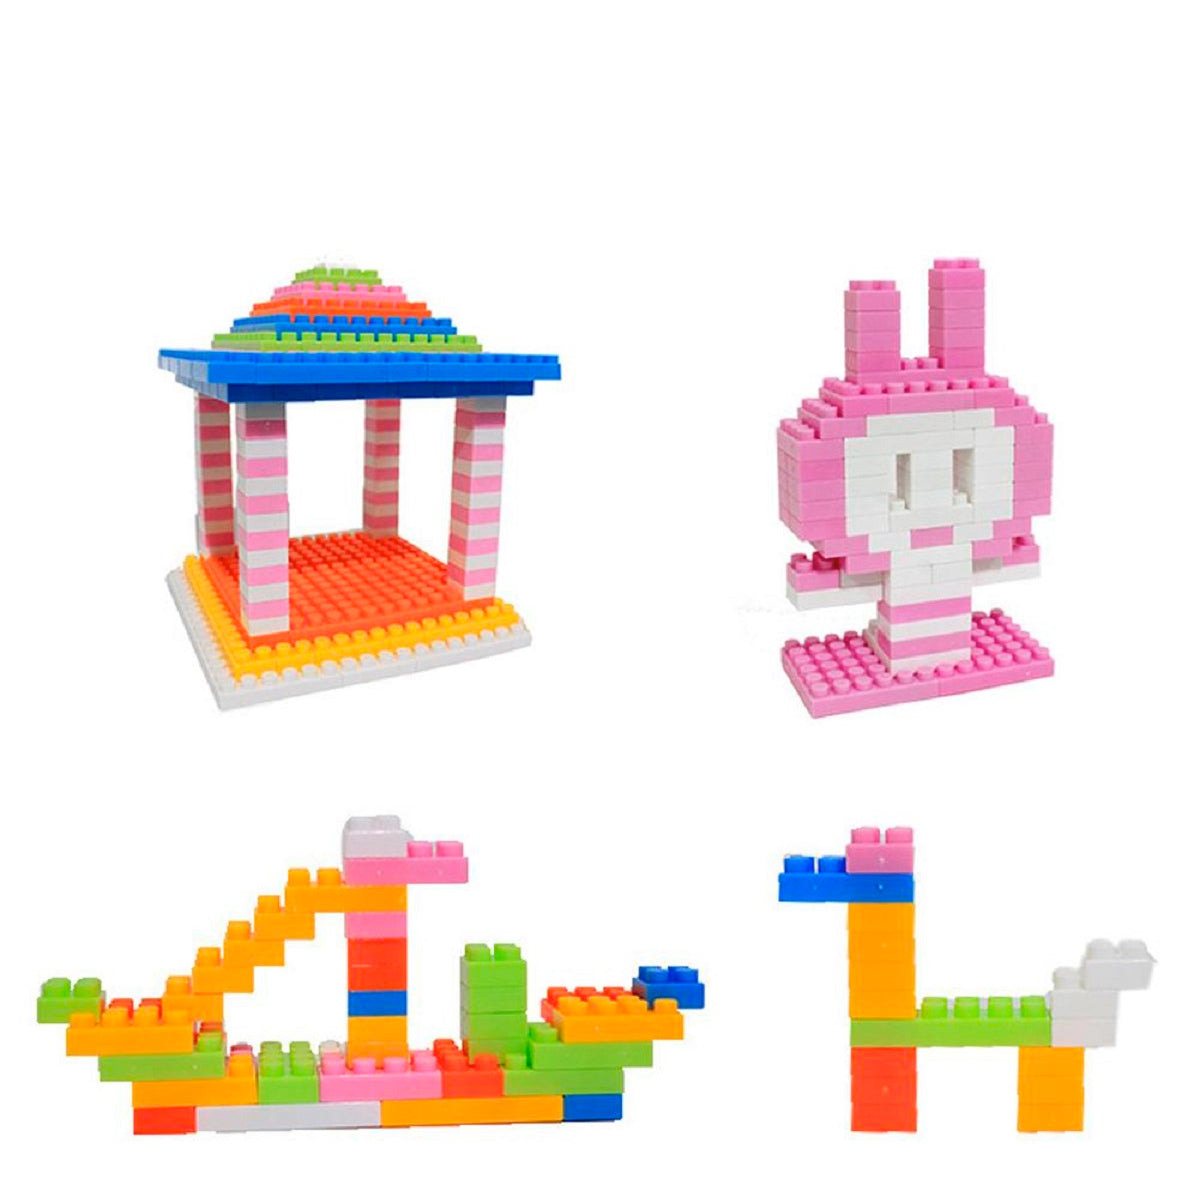 144-Piece Set: Kids' Colorful Toy Building Blocks